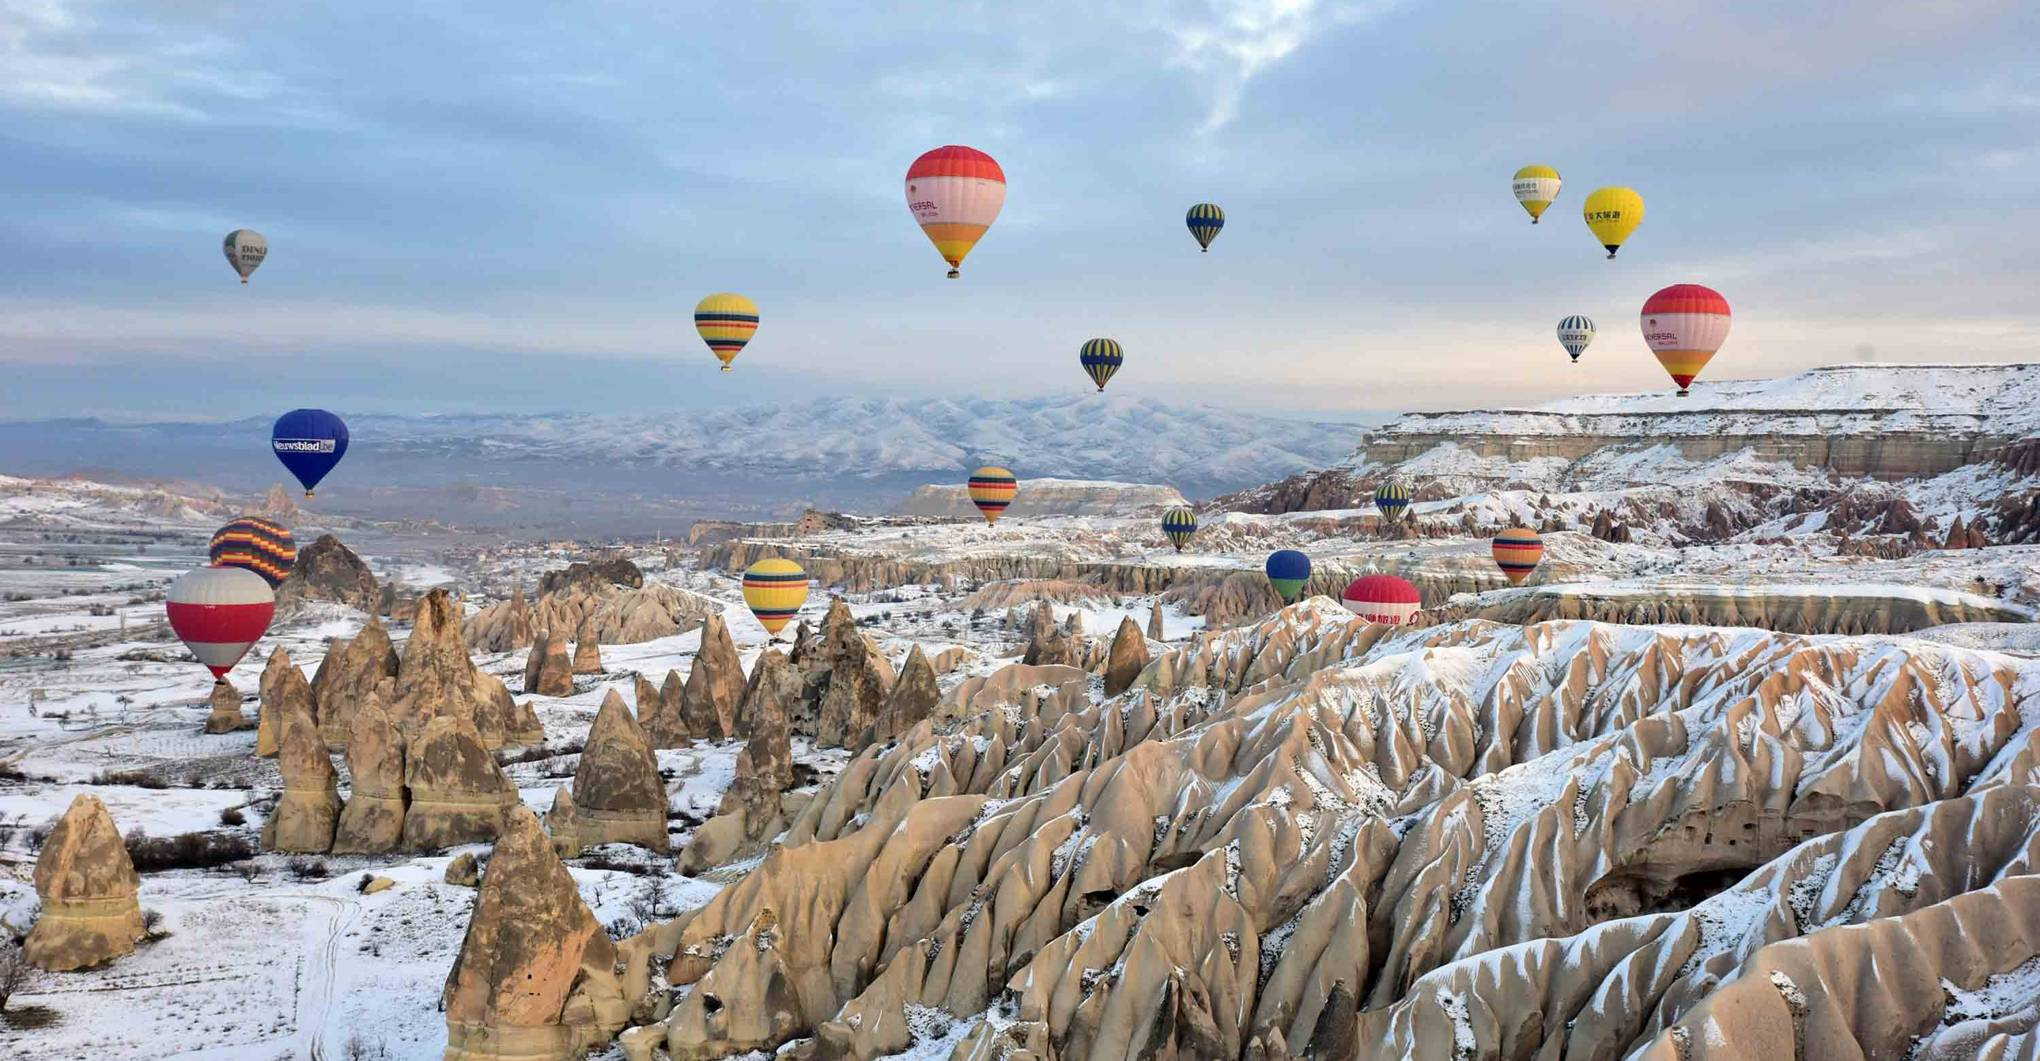 10 places that are even better in the snow